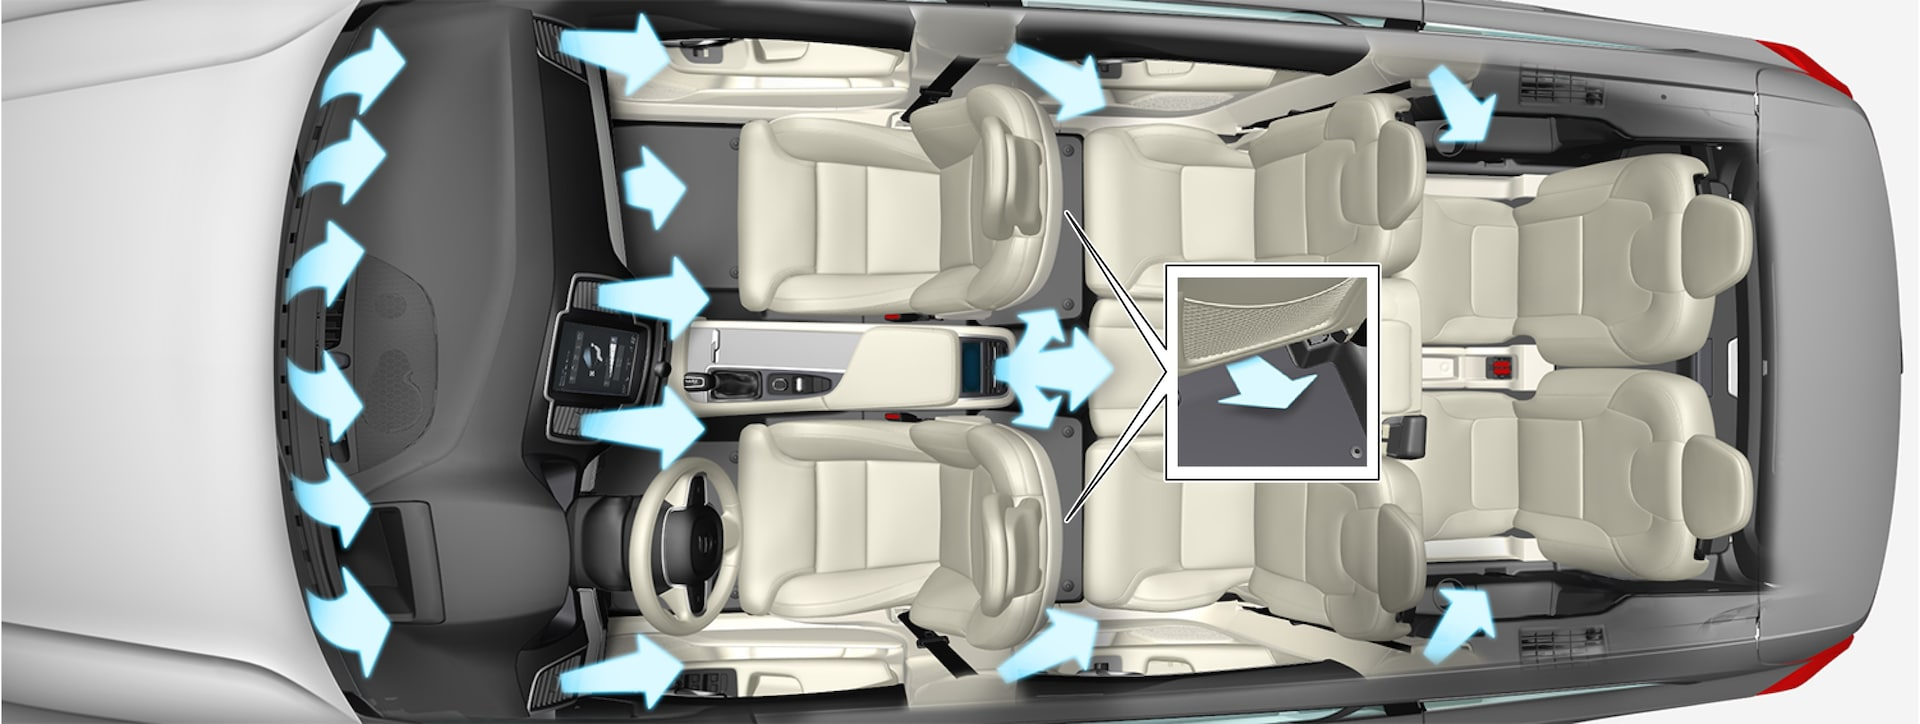 P5-1617-XC90/XC90H–Climate–Air distribution overview